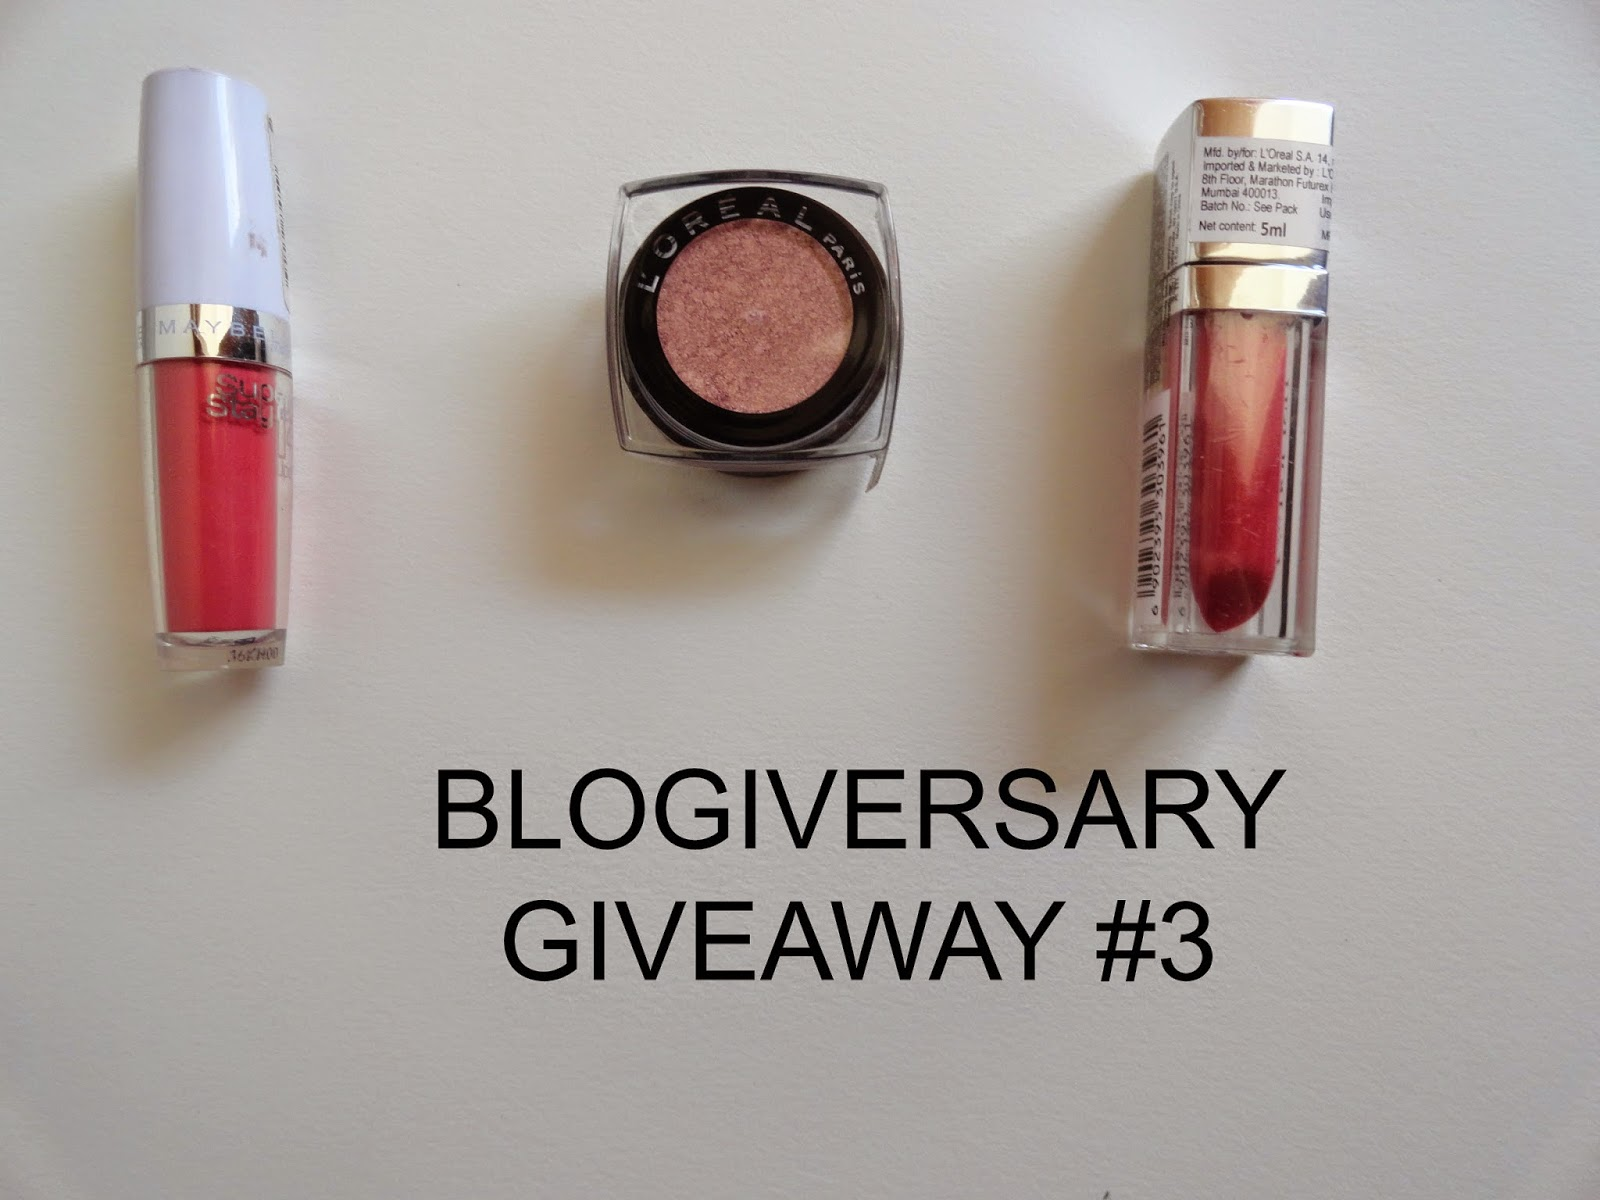 Blogiversary giveaway #3: Pretty in pink image